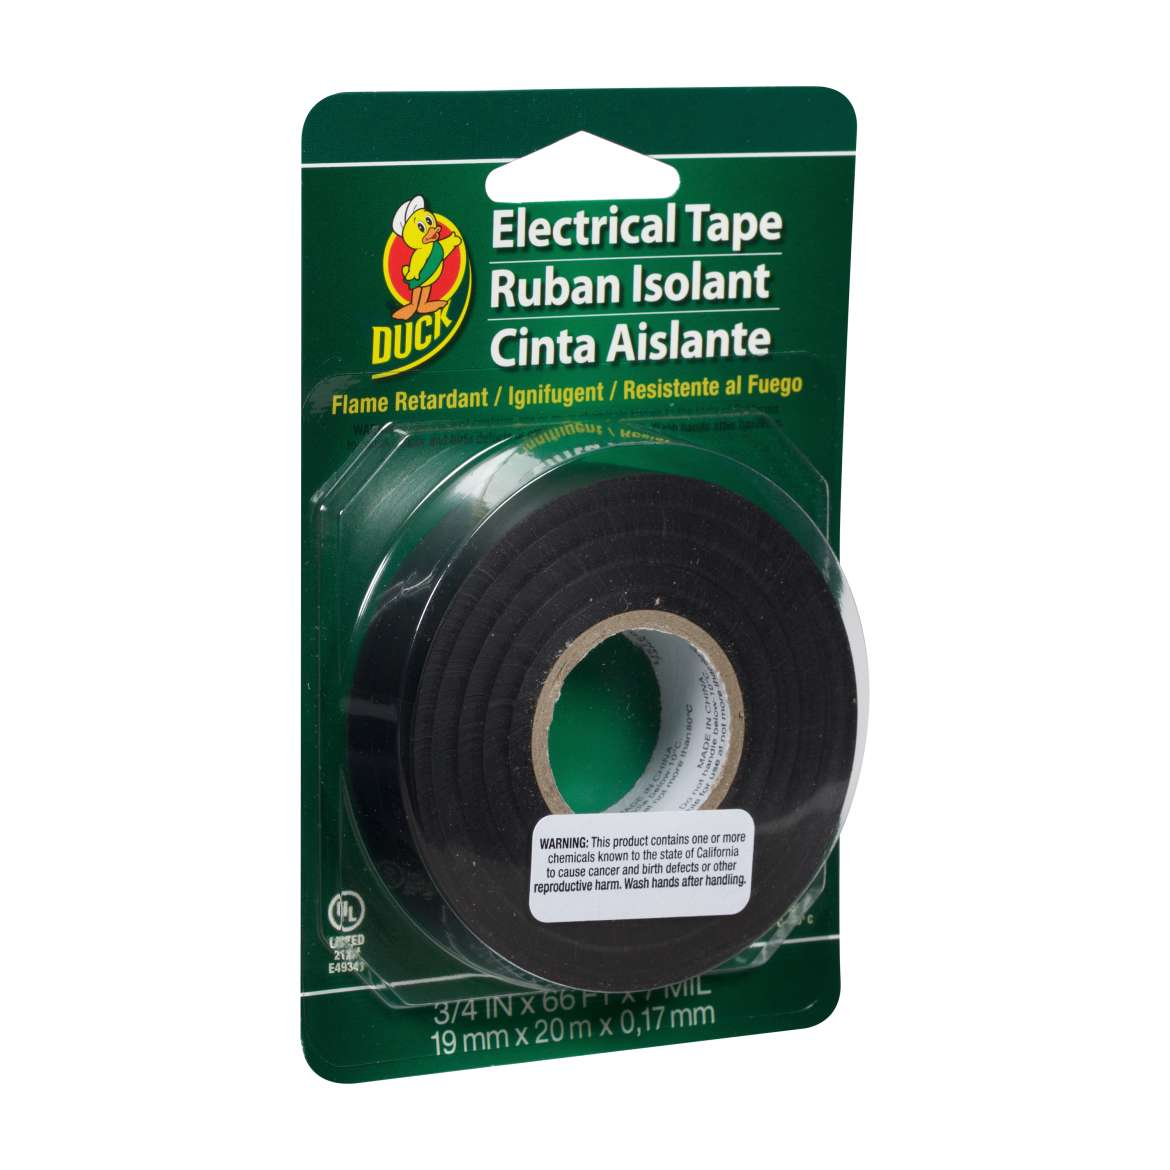 Professional Electrical Tape Image